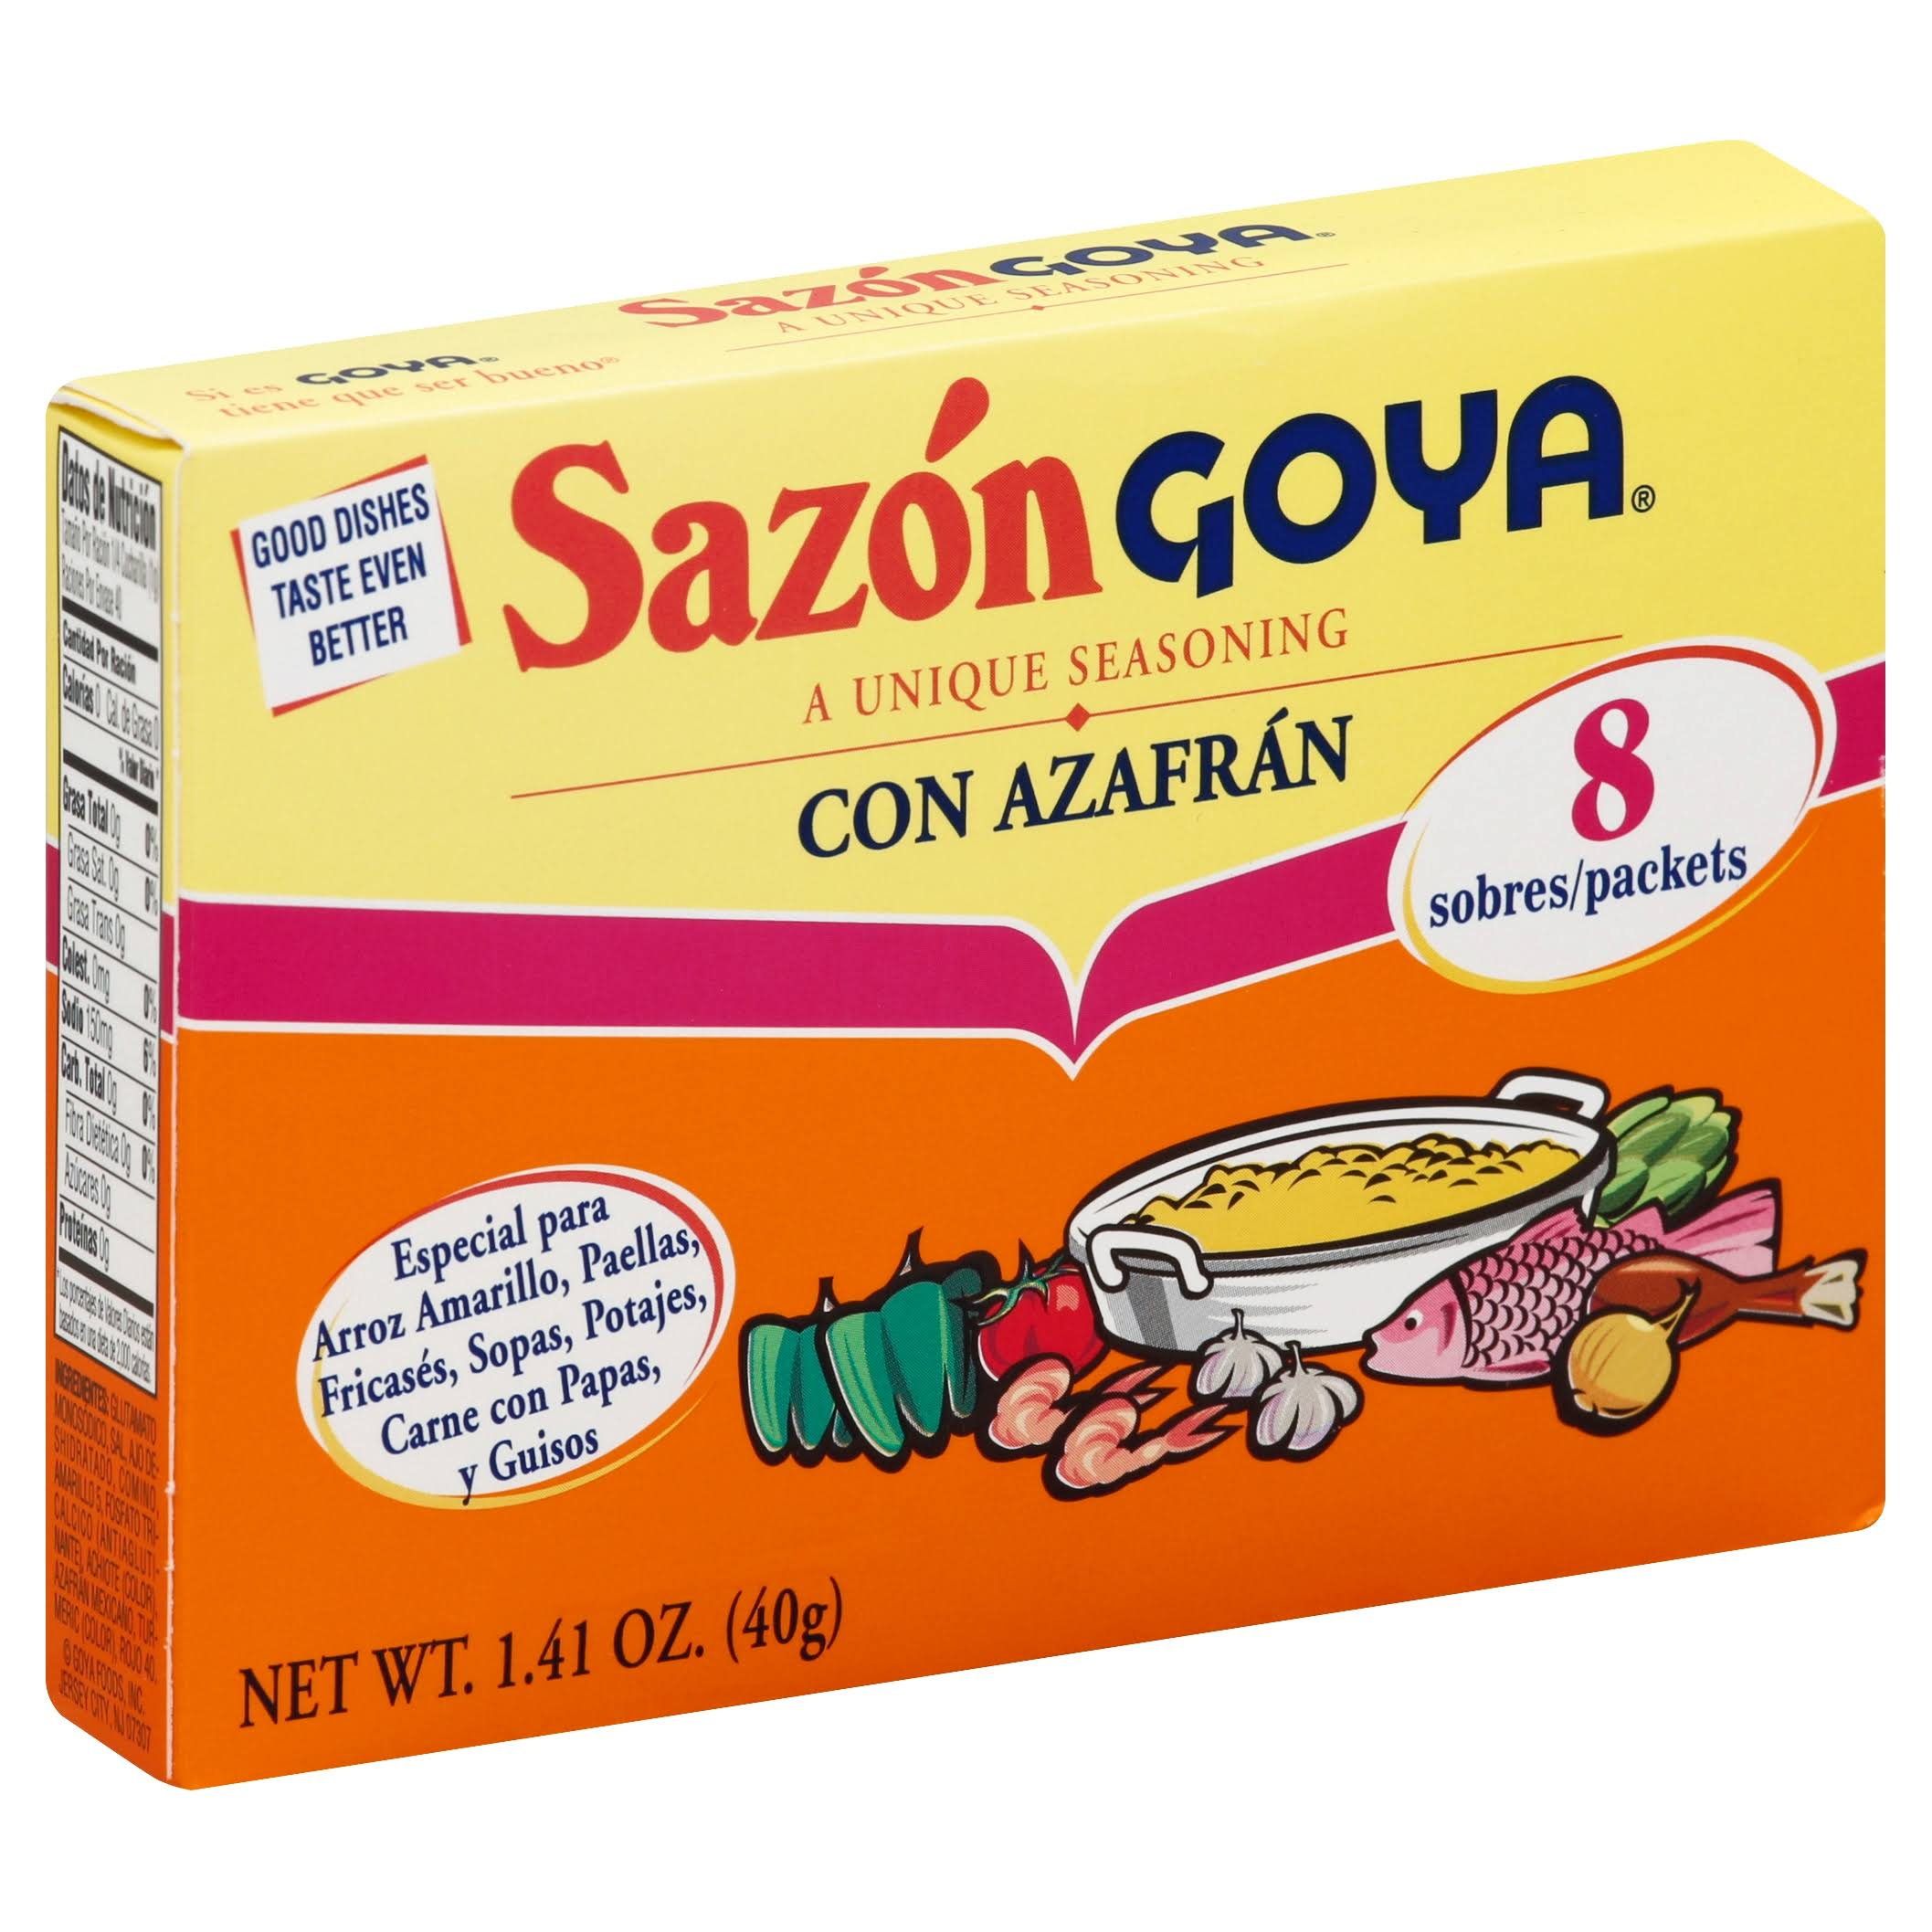 Goya Sazon Con Azafran Seasoning - 1.41oz